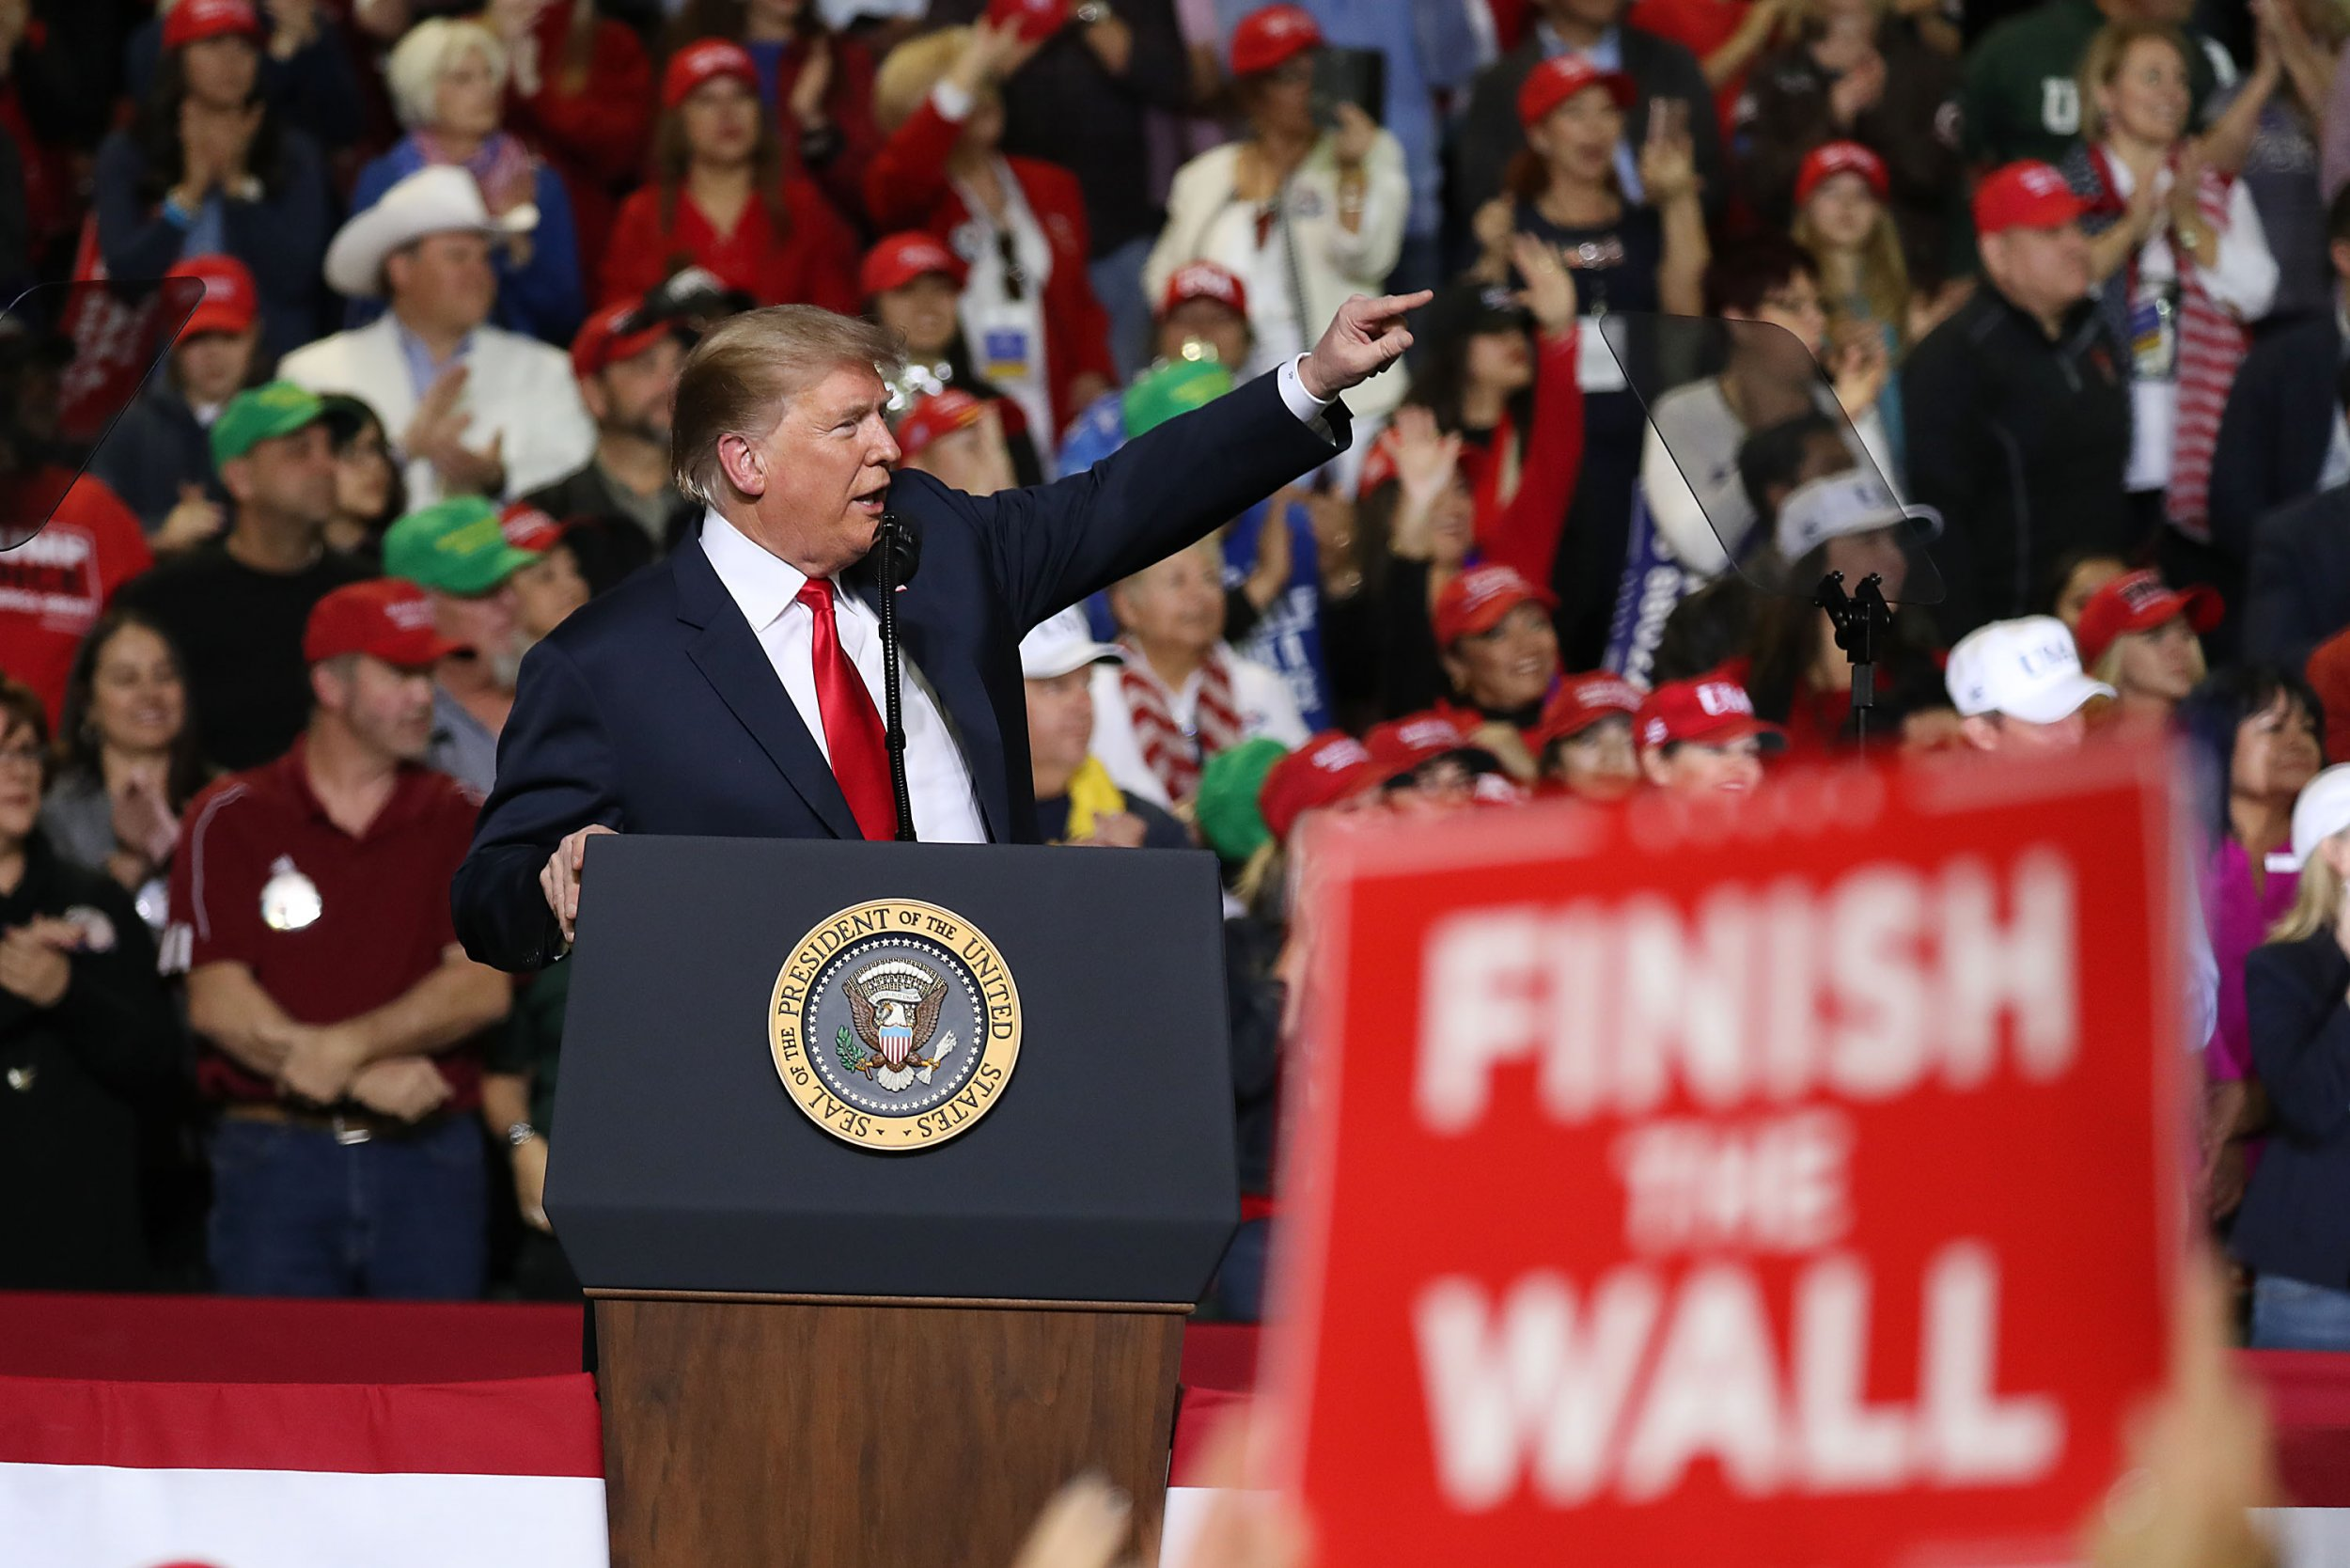 donald trump, white supremacy, wall, immigration, latin americans